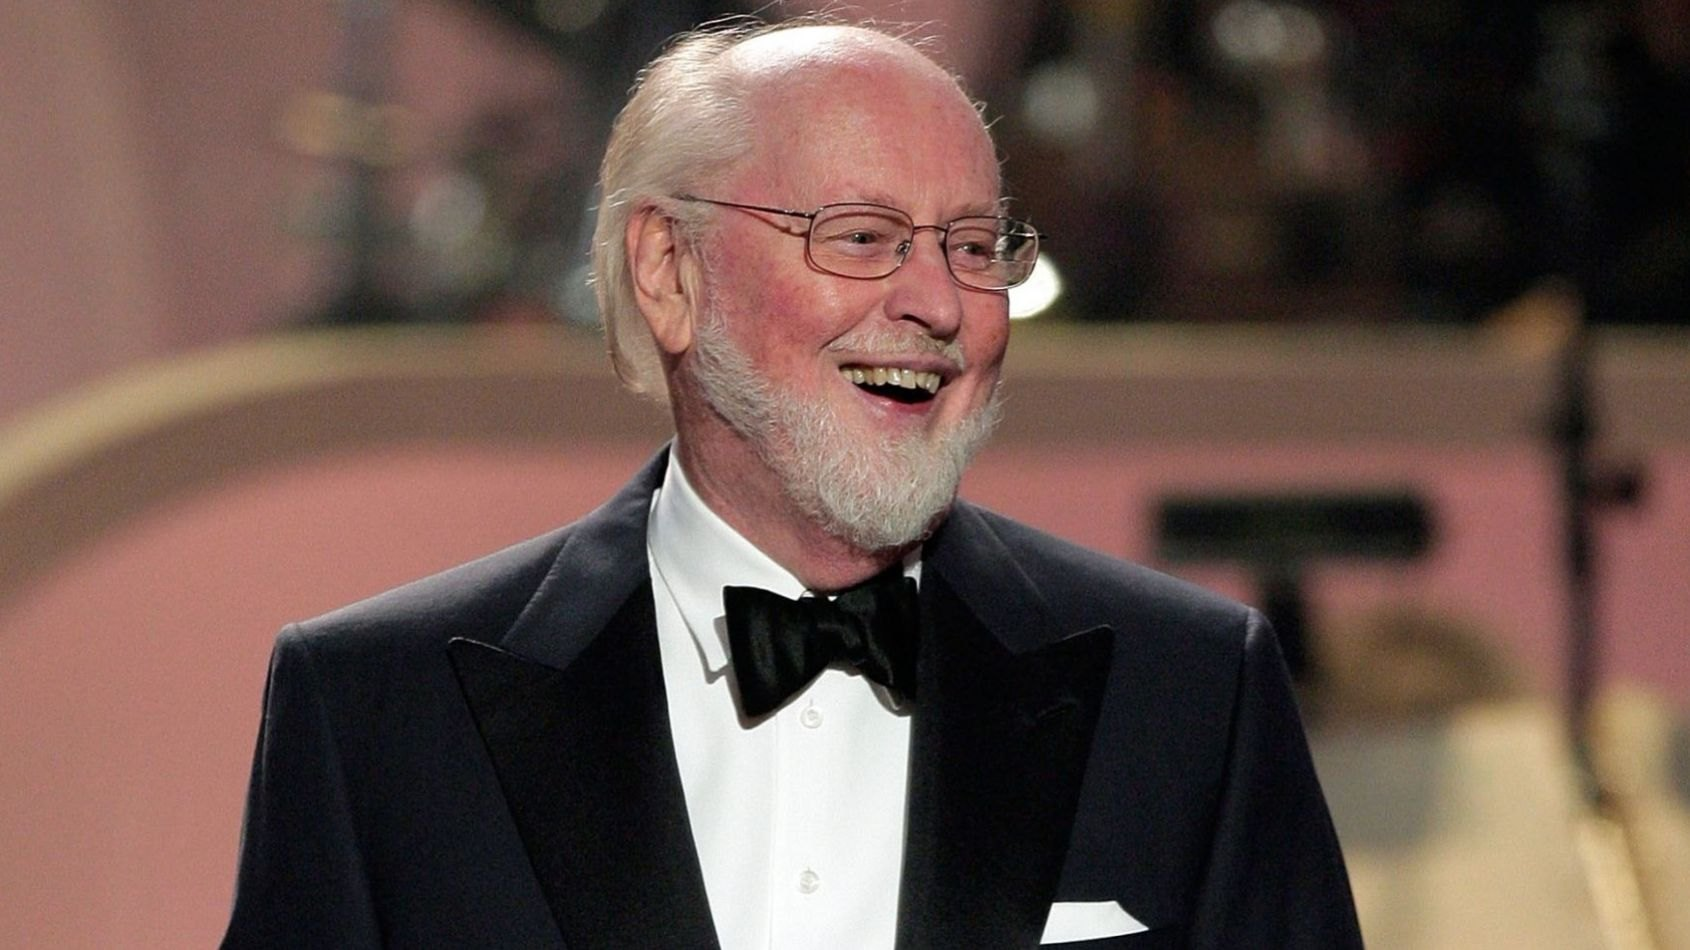 John Williams composera la musique de l'épisode IX